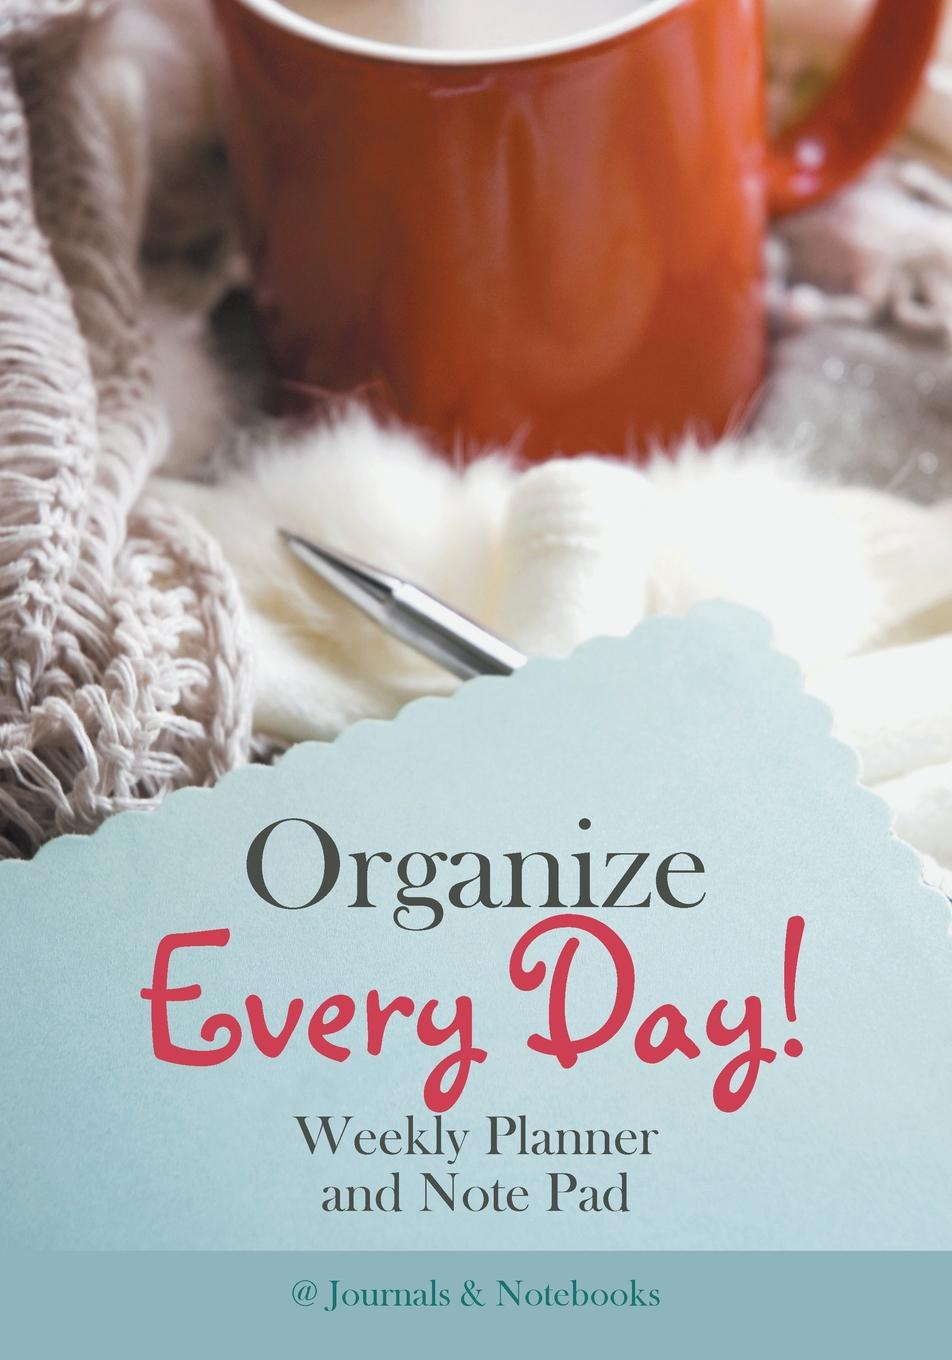 @Journals Notebooks Organize Every Day! Weekly Planner and Note Pad week planner wall decal